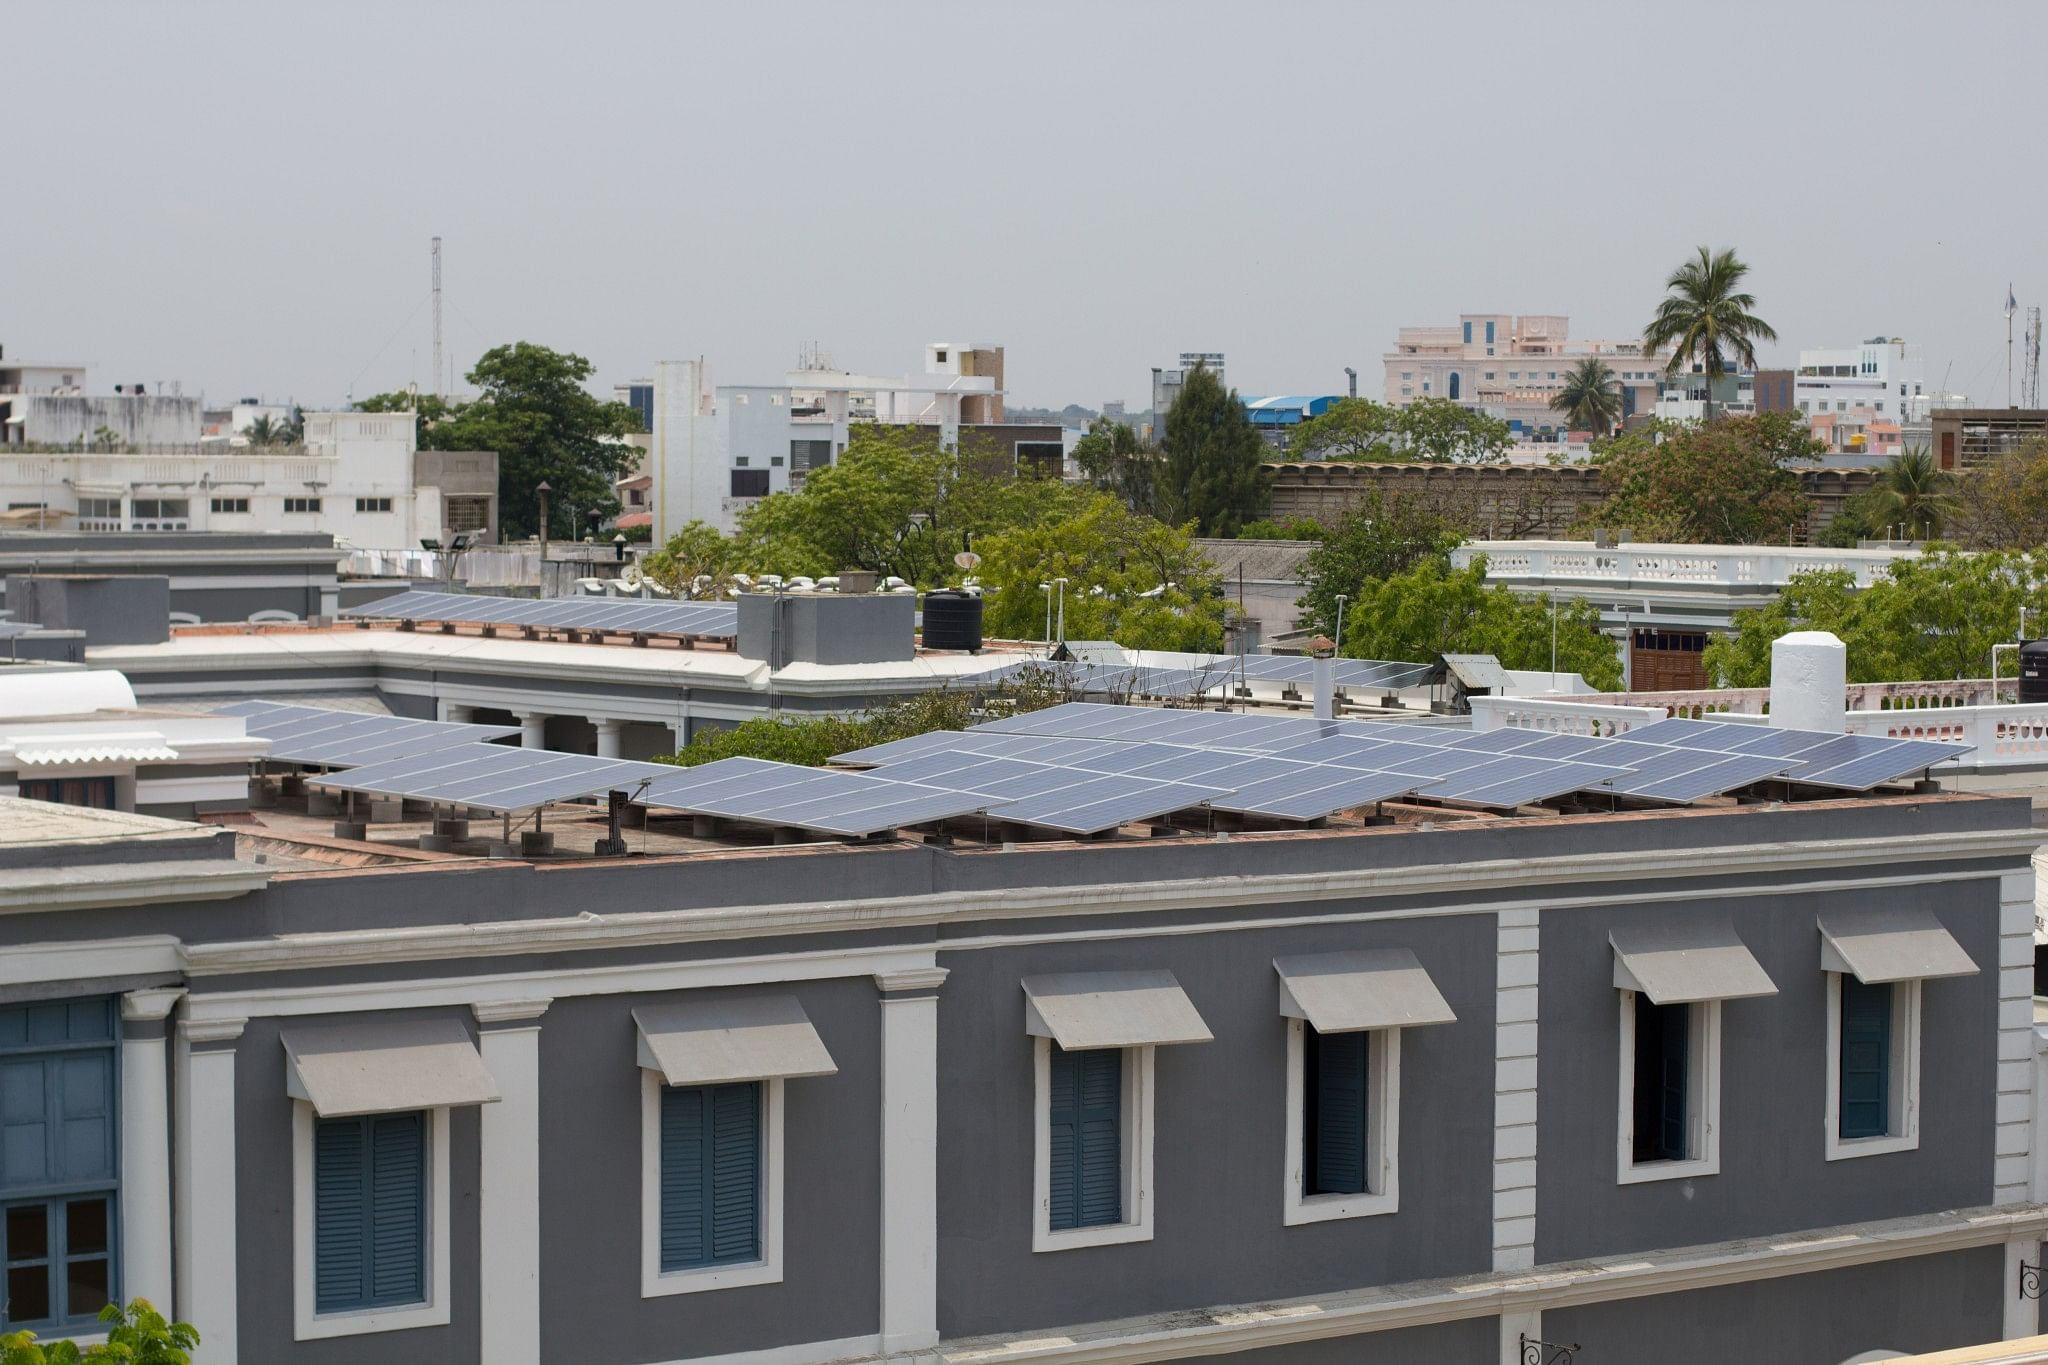 A side-view of the solar panels installed on SAICE rooftop